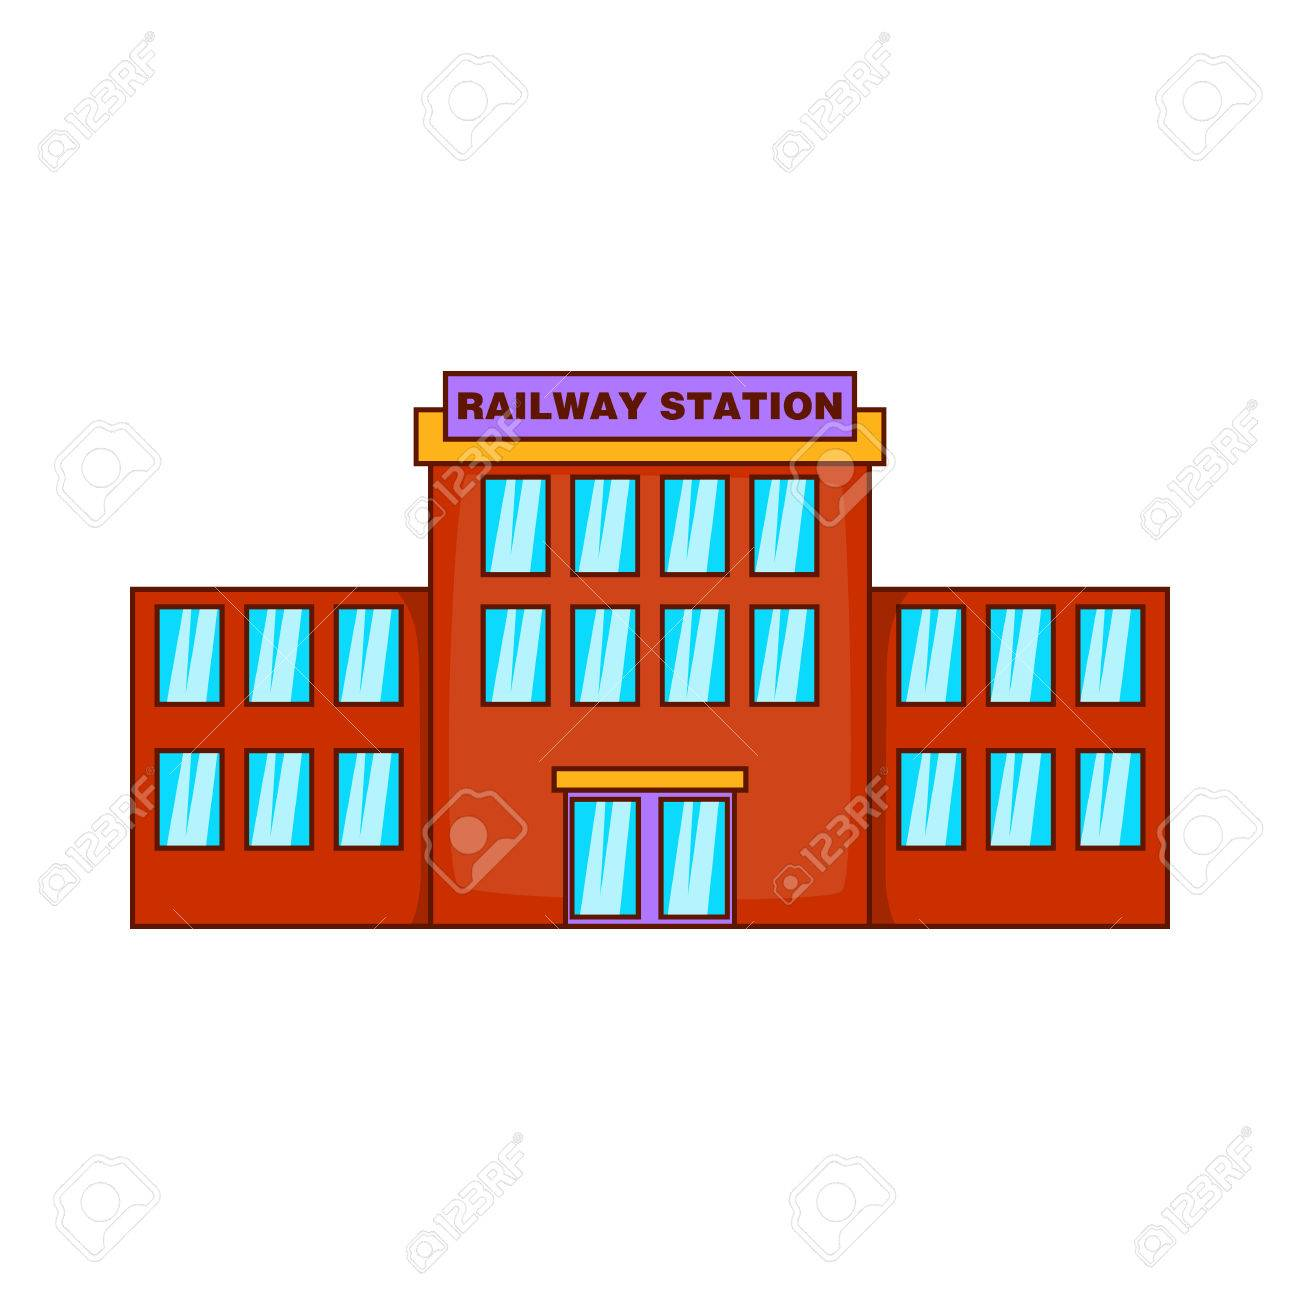 Railway station icon in cartoon style isolated on white background railway station icon in cartoon style isolated on white background building symbol stock vector biocorpaavc Images